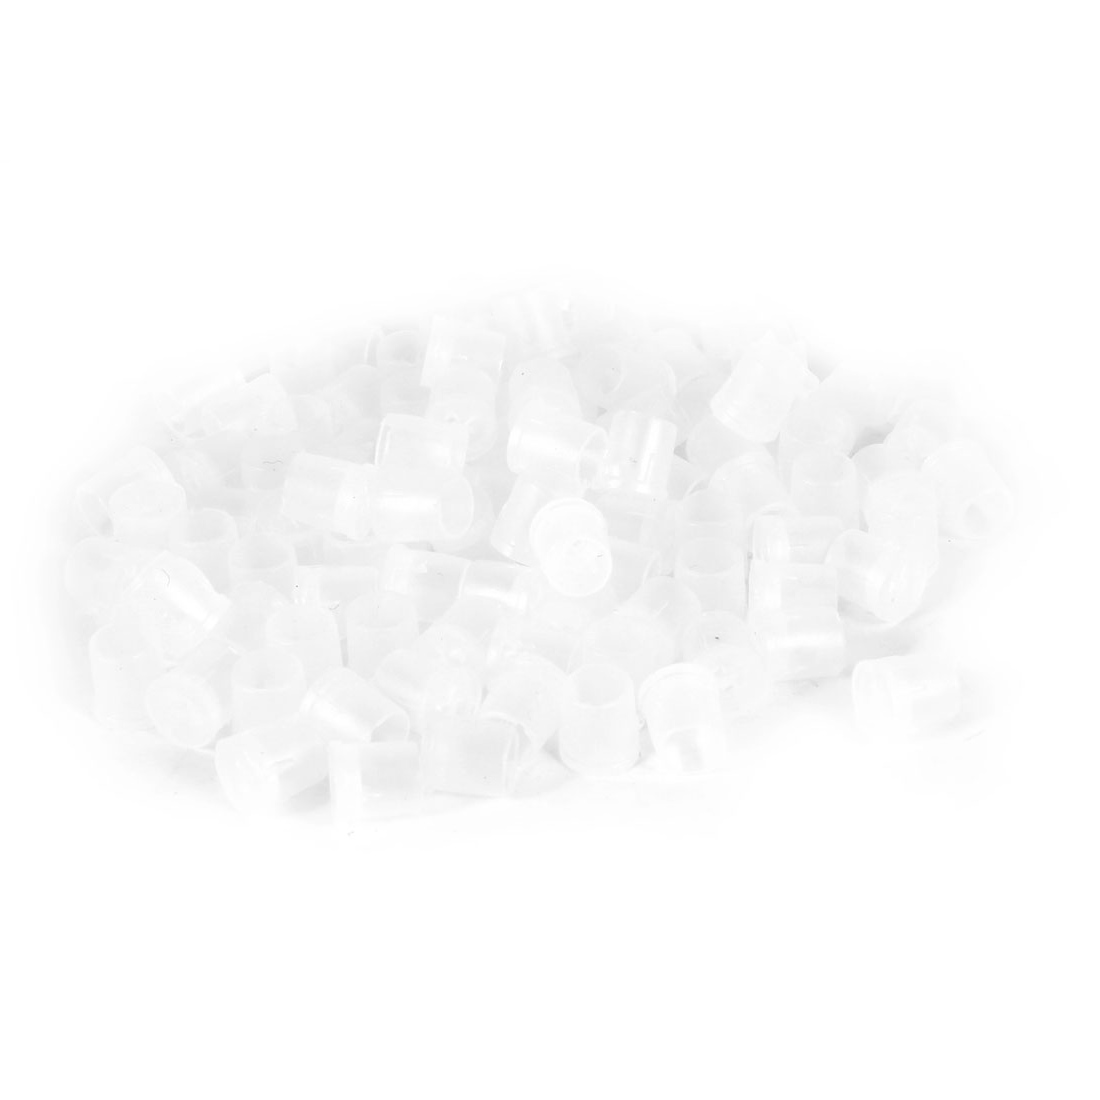 100 Pcs White Plastic PCB Board LED Spacer Support Holder Boot 5mm x 7mm